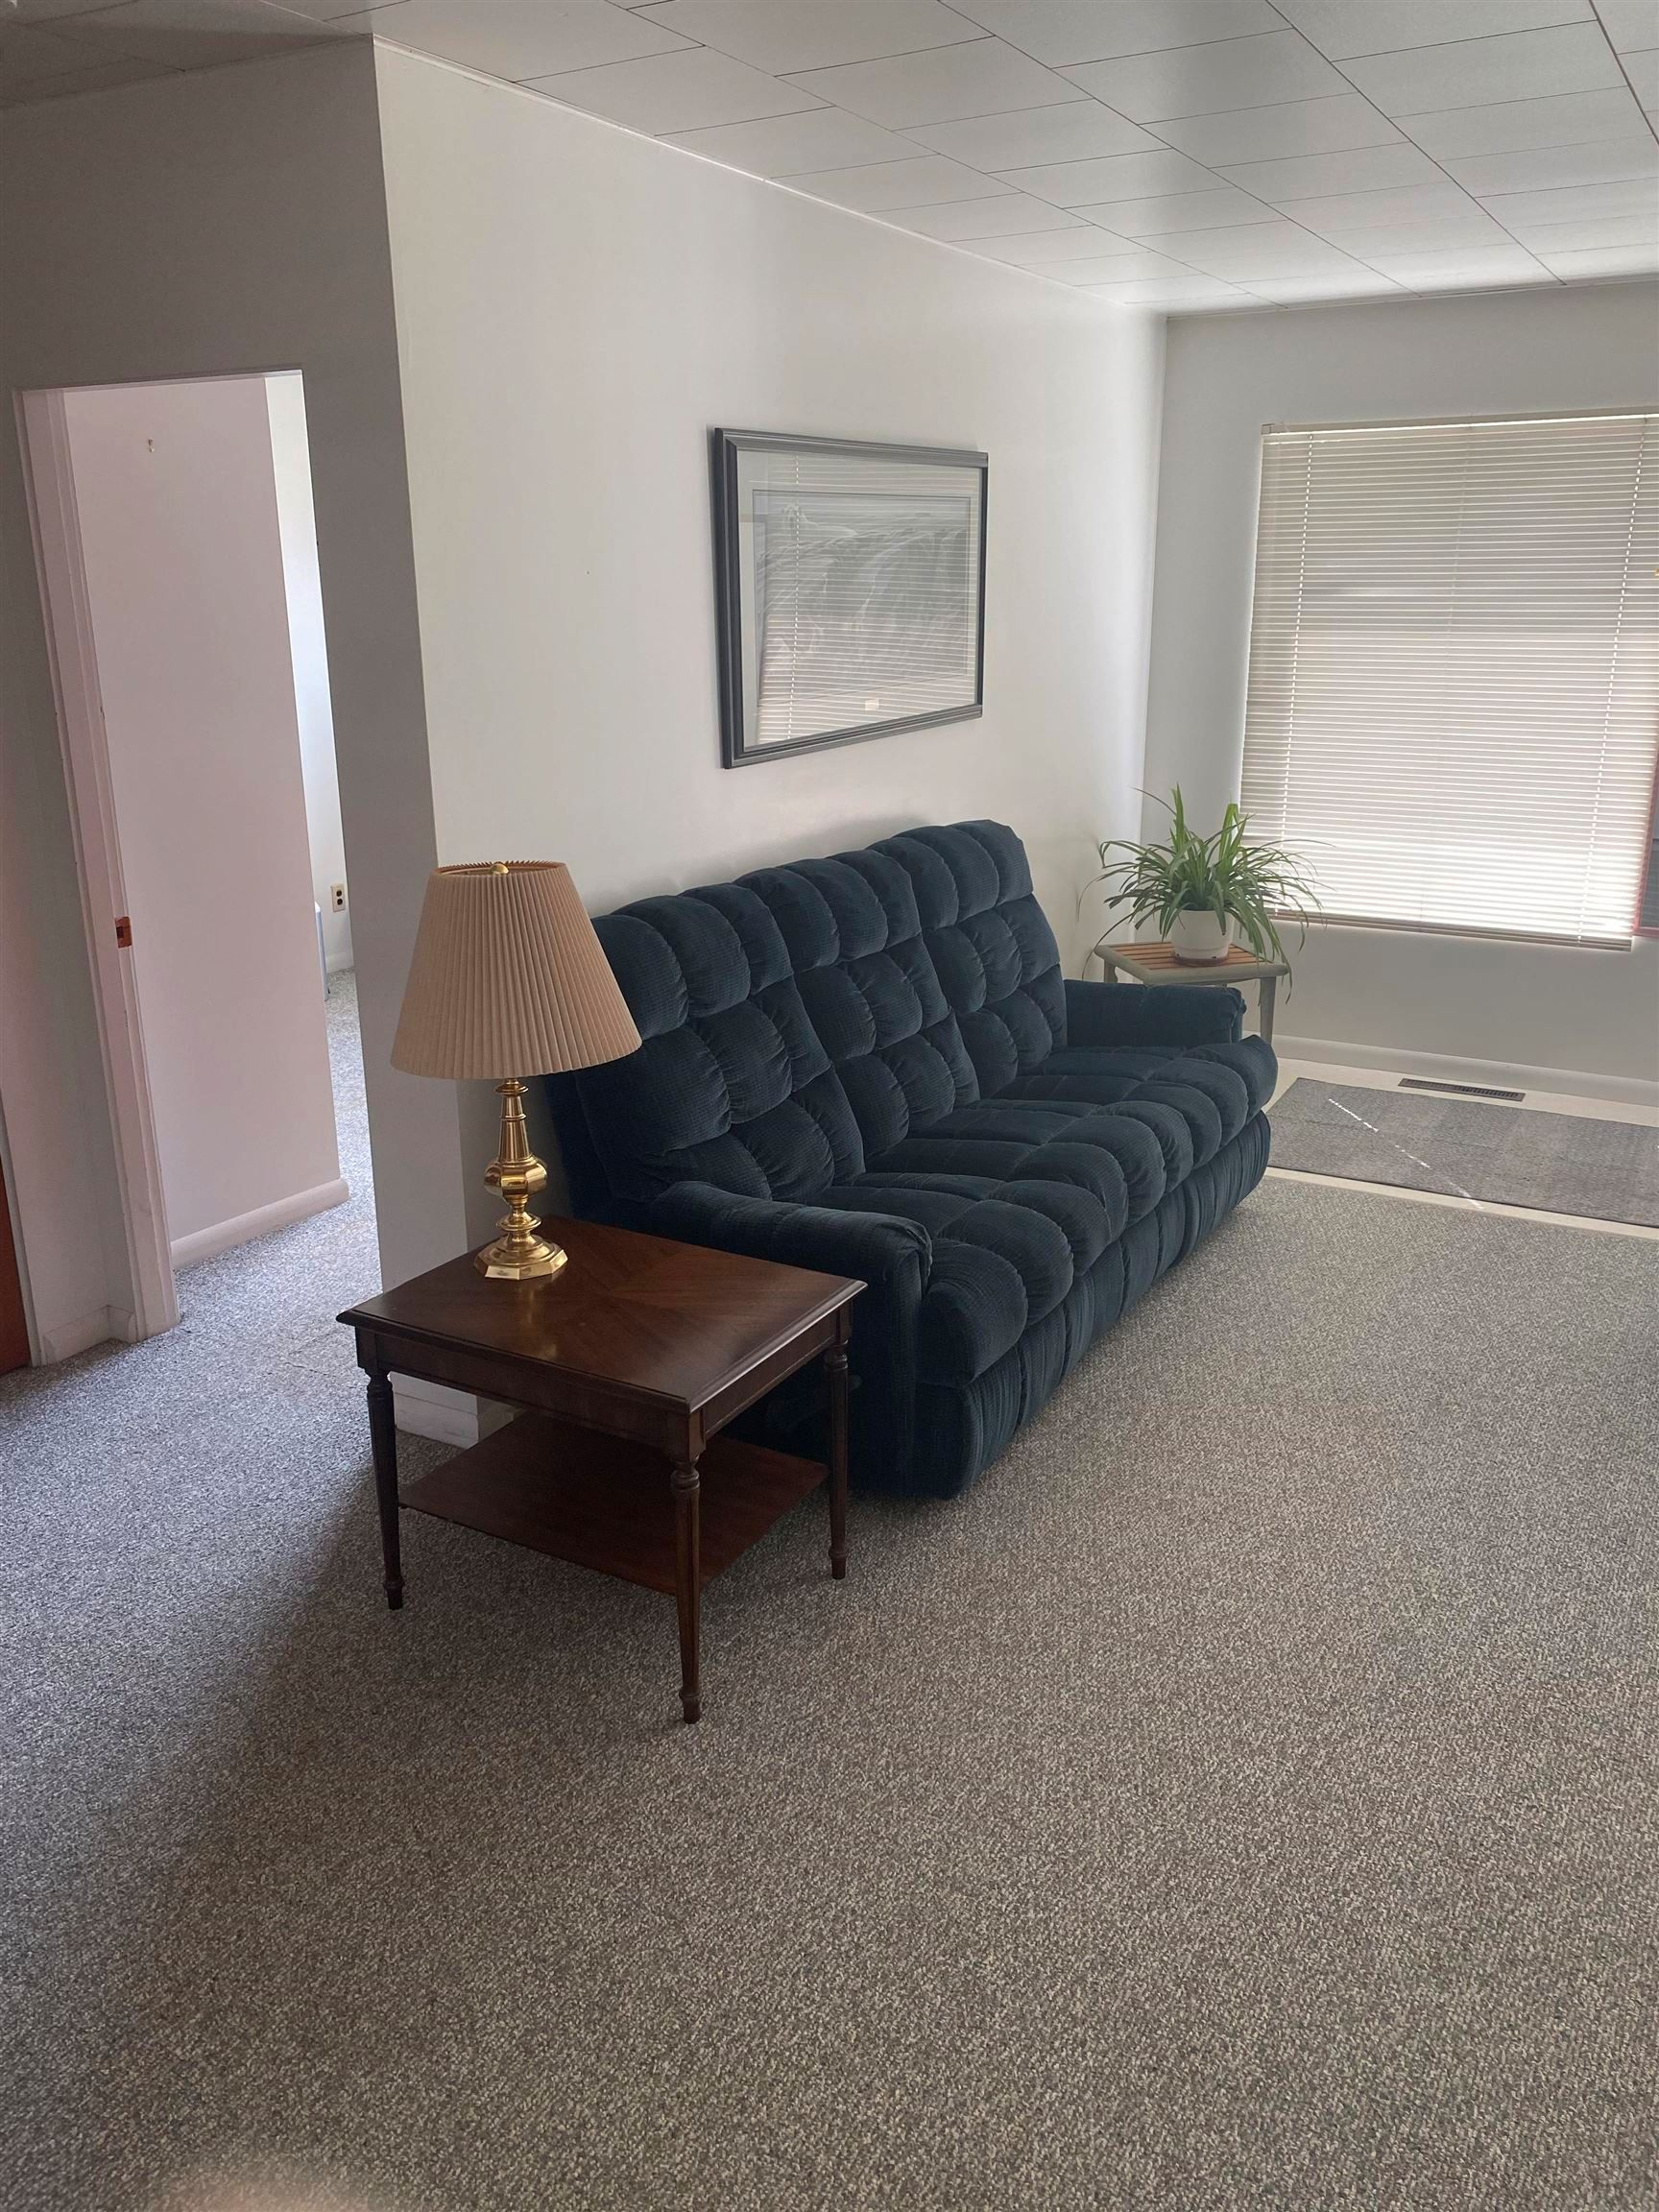 Photo 10: Photos: 346 - 352 CARNEY Street in Prince George: Central Duplex for sale (PG City Central (Zone 72))  : MLS®# R2609479